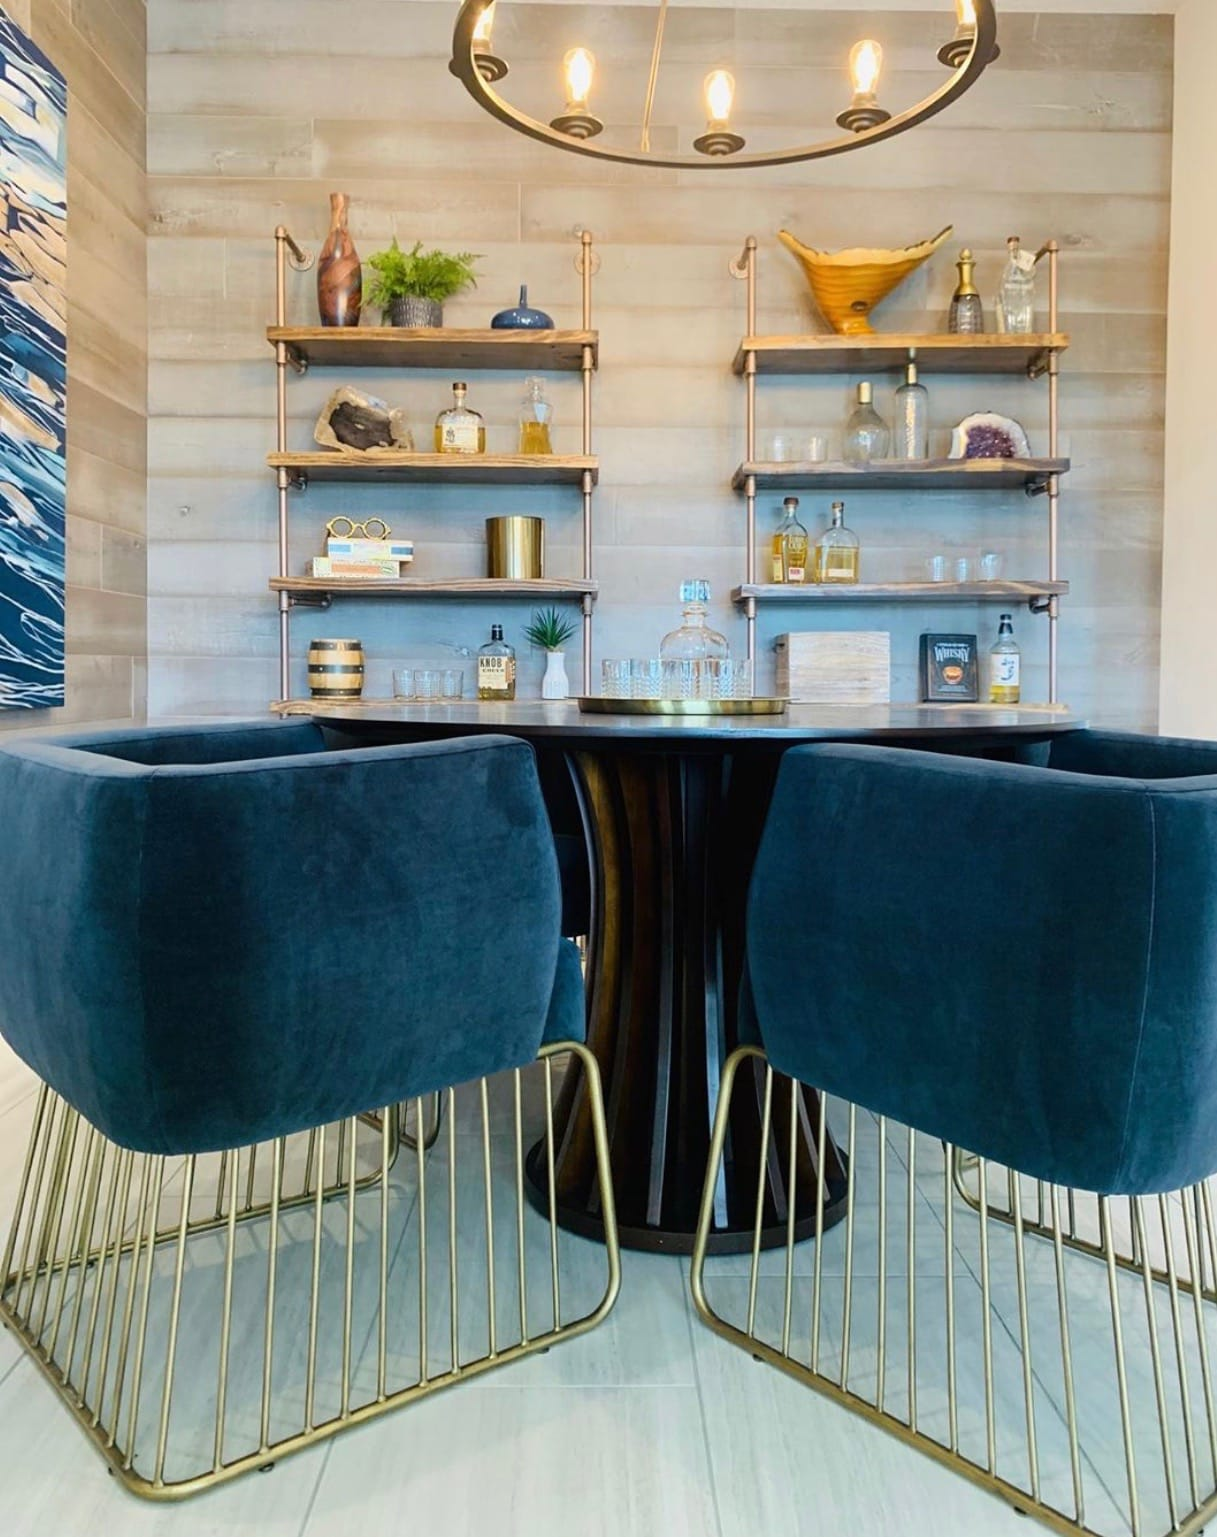 Blue and gold dining chairs.